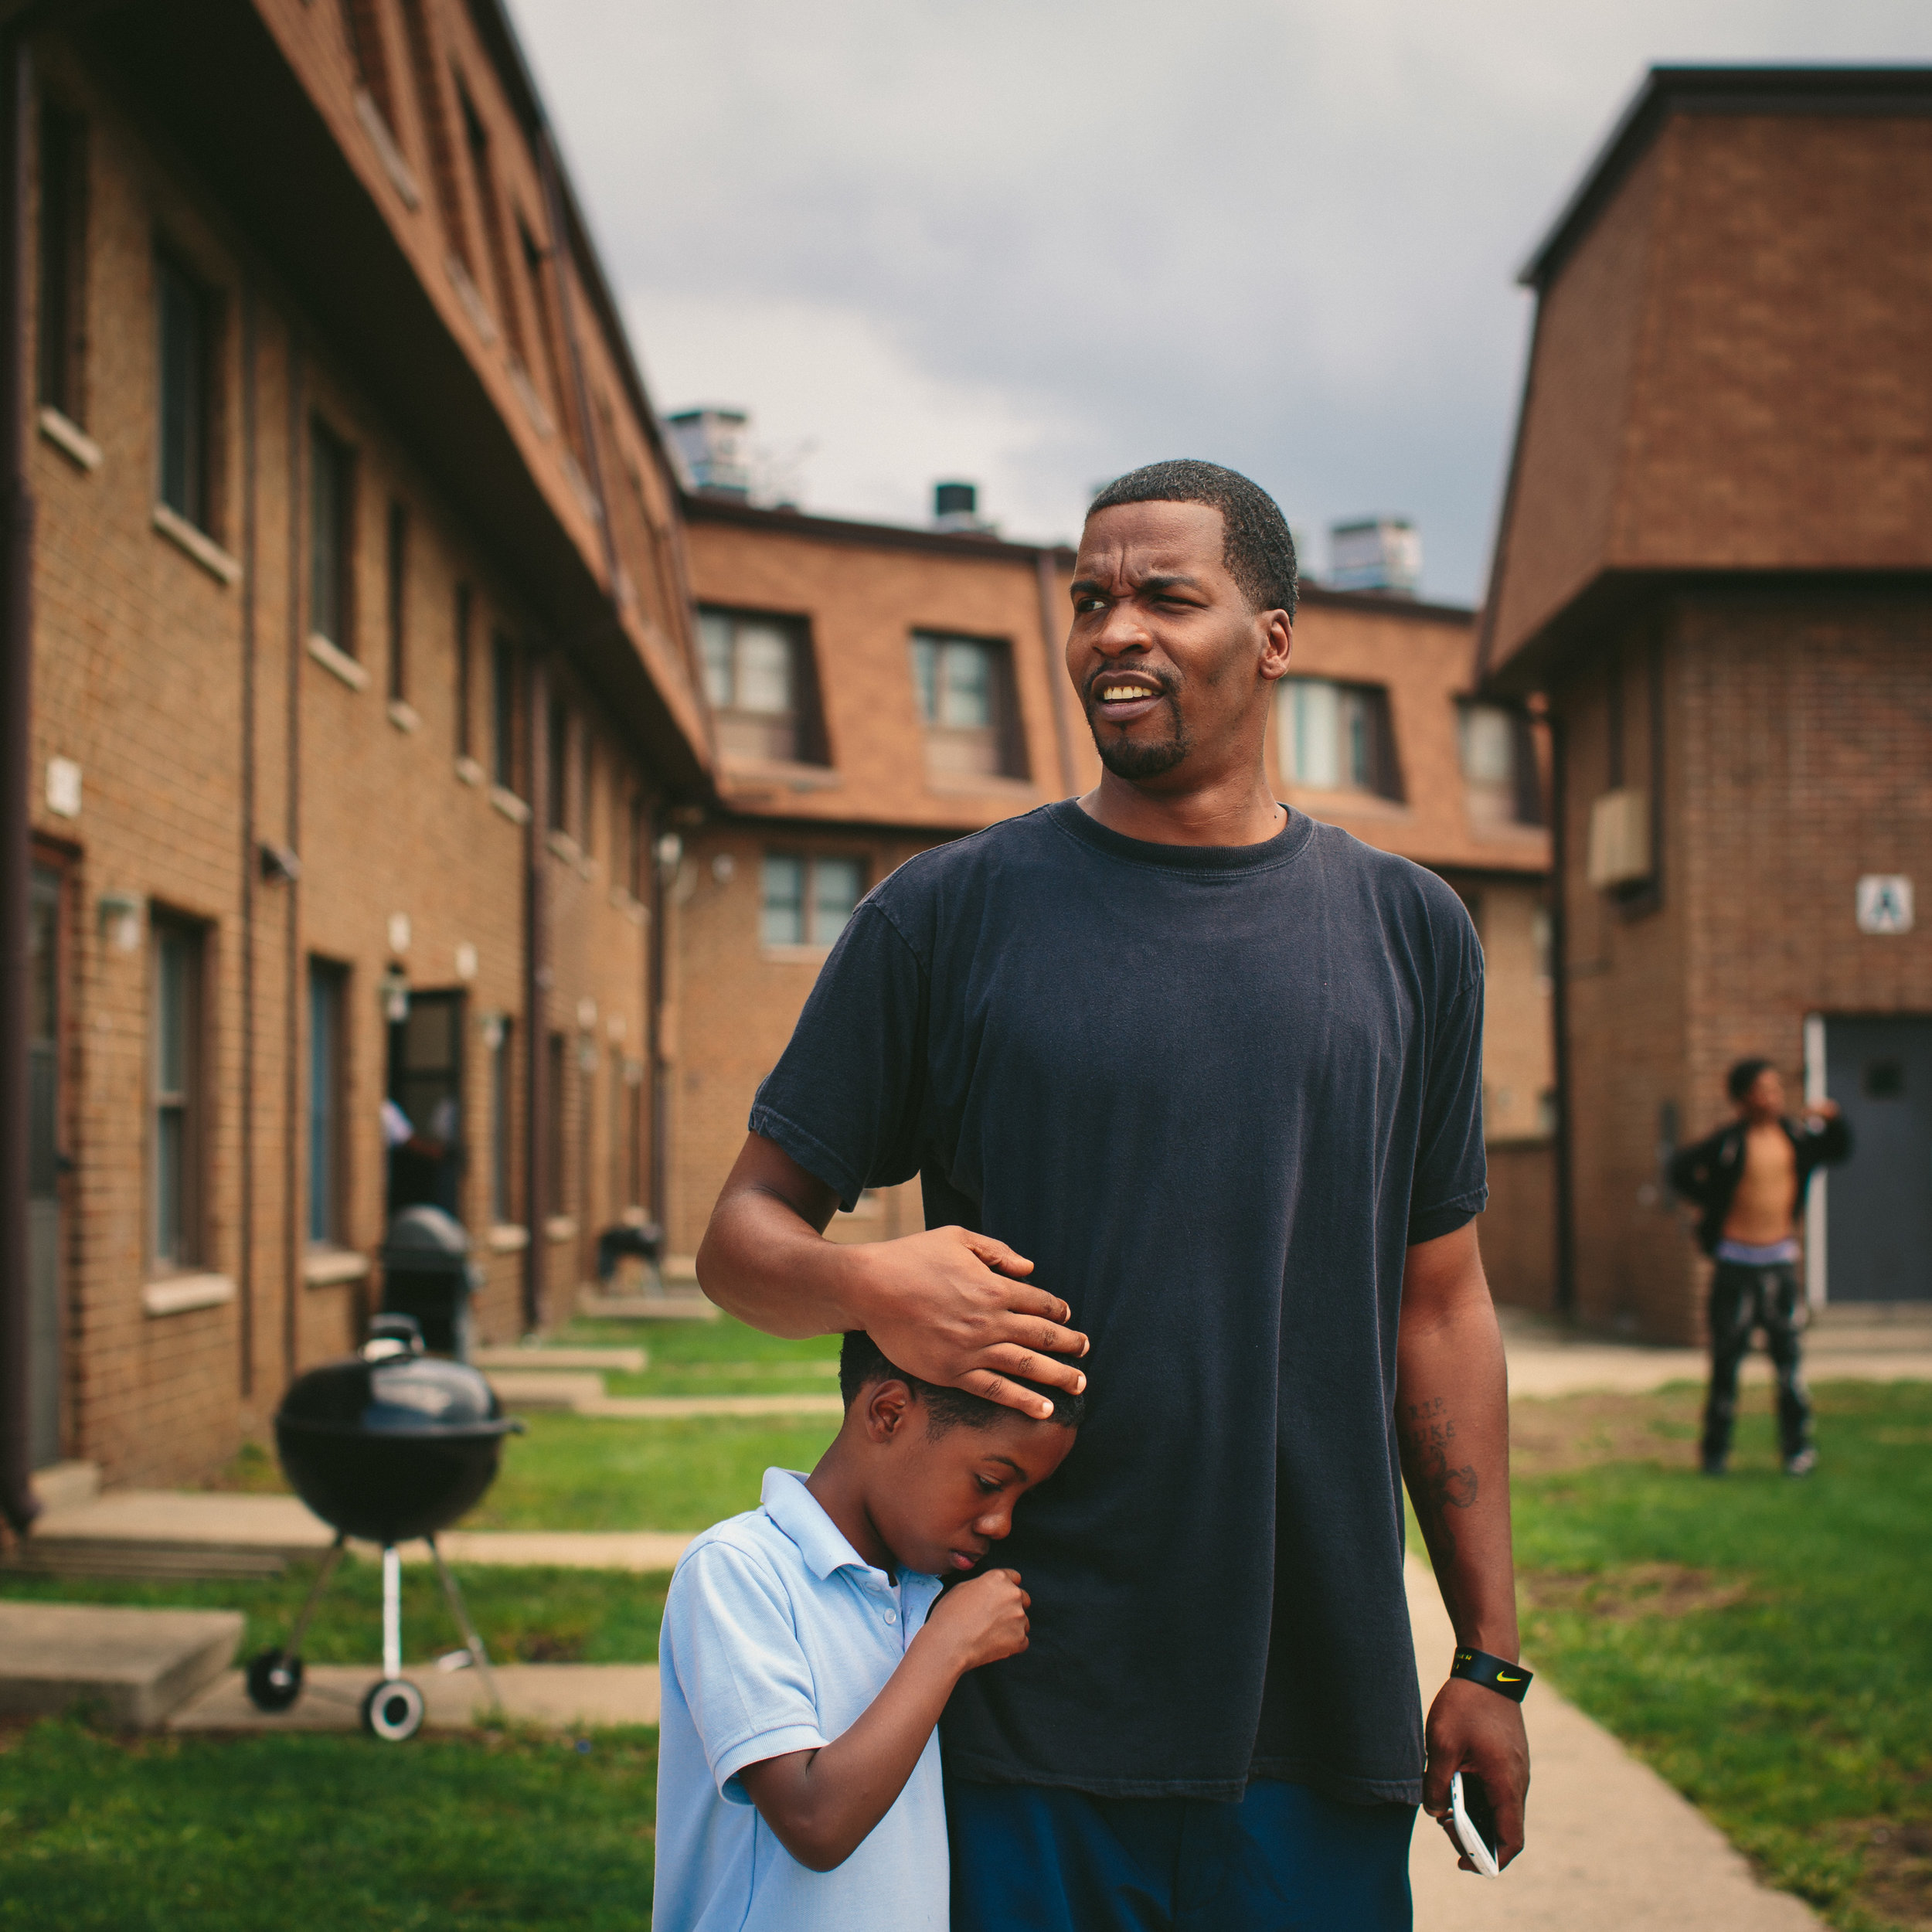 Lamont Anderson embraces his son Lamont Anderson Jr., 8, at the West Calumet Housing Complex. Anderson Jr.'s blood lead levels test results were above the CDC's 5 mg/d threshold for action. After living in the complex for more than a decade, the family moved to Gary, Indiana earlier this summer.